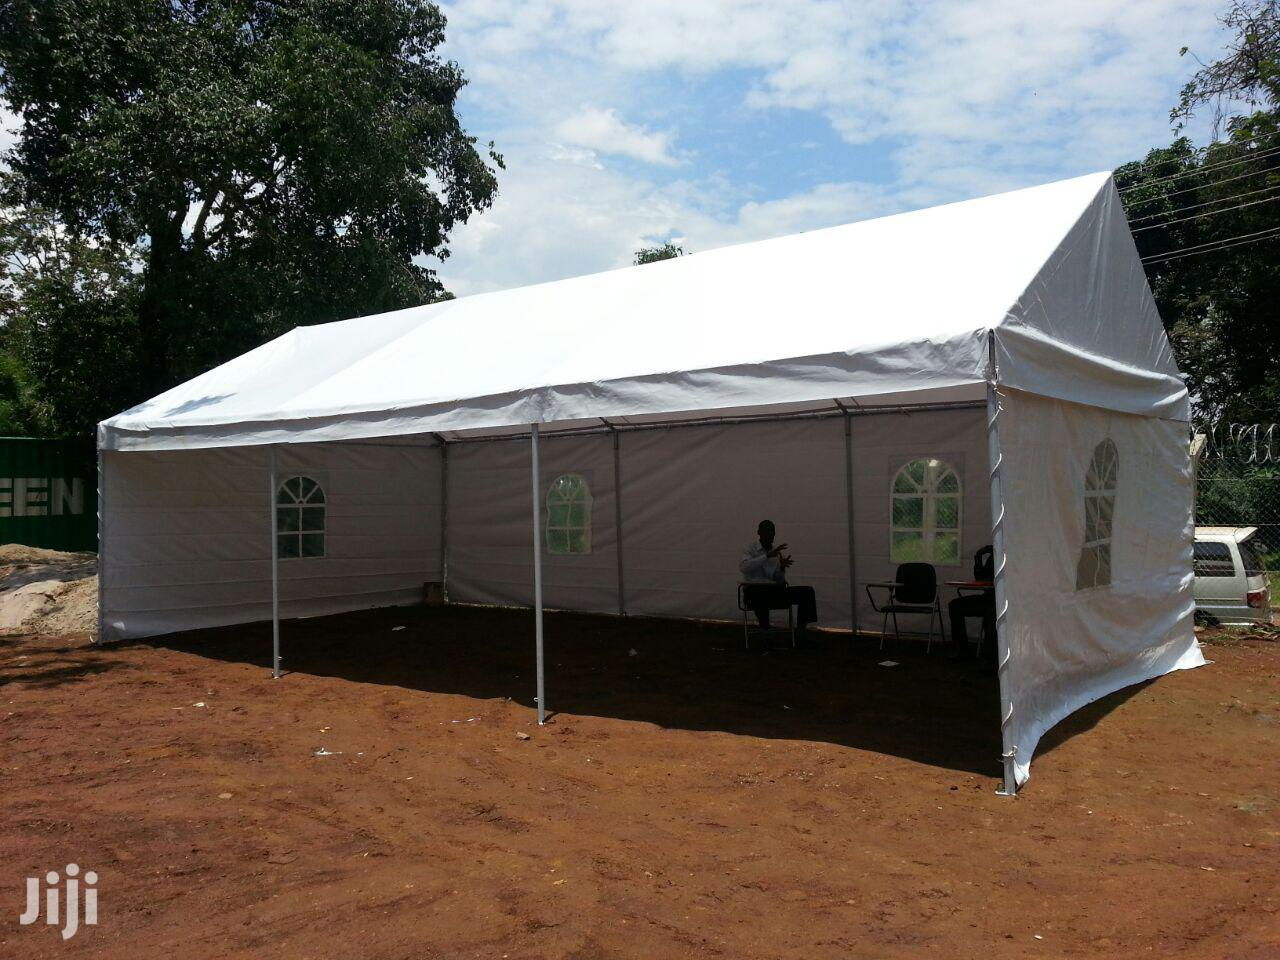 Manufacture Of All Types Of Tents